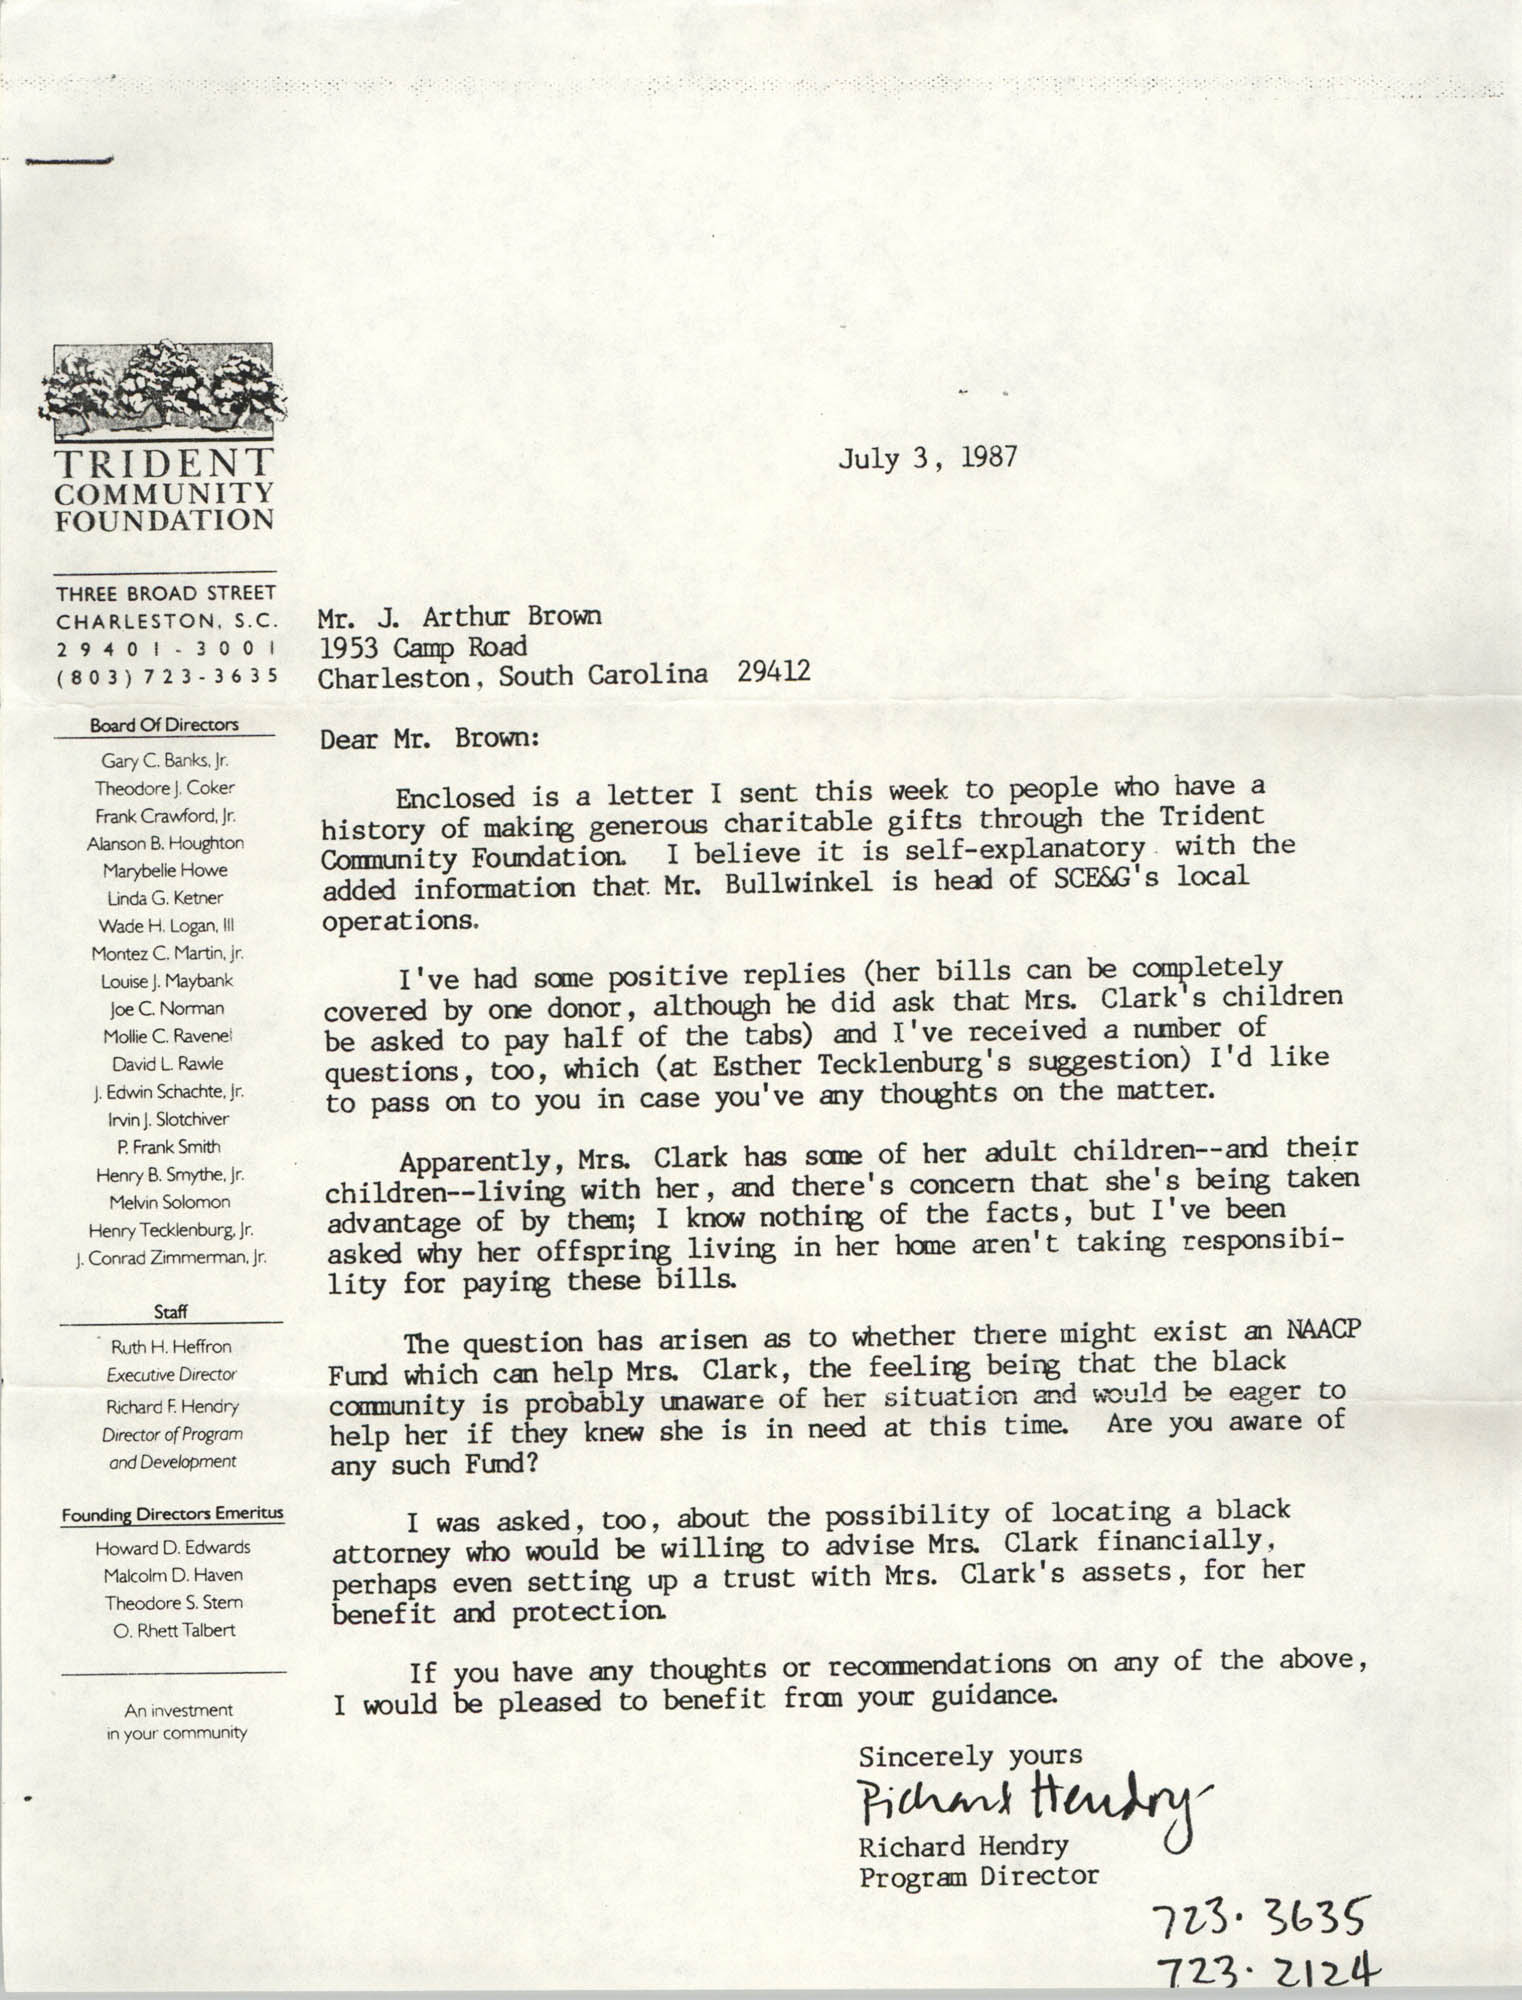 Letter from Richard Hendry to J. Arthur Brown, July 3, 1987